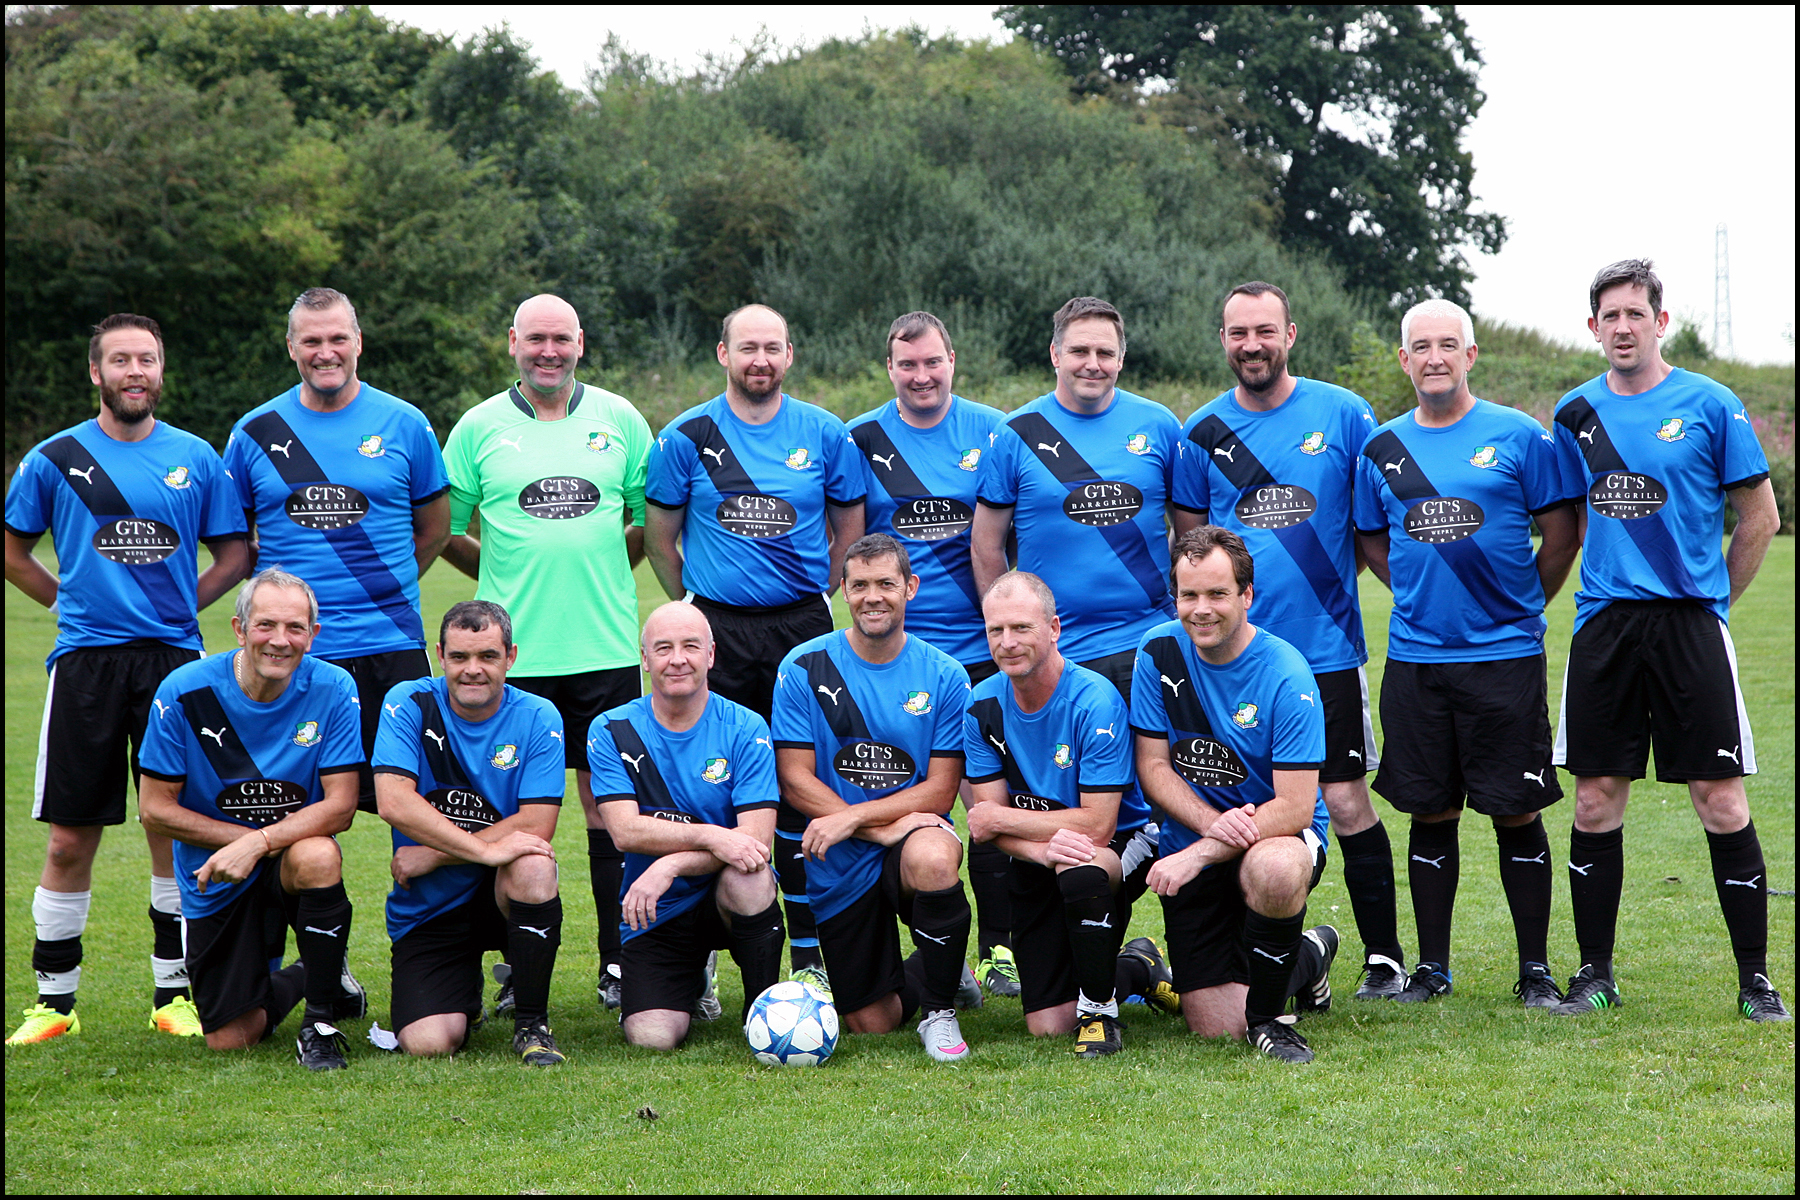 Northop hall Old Boys FC 2016/17